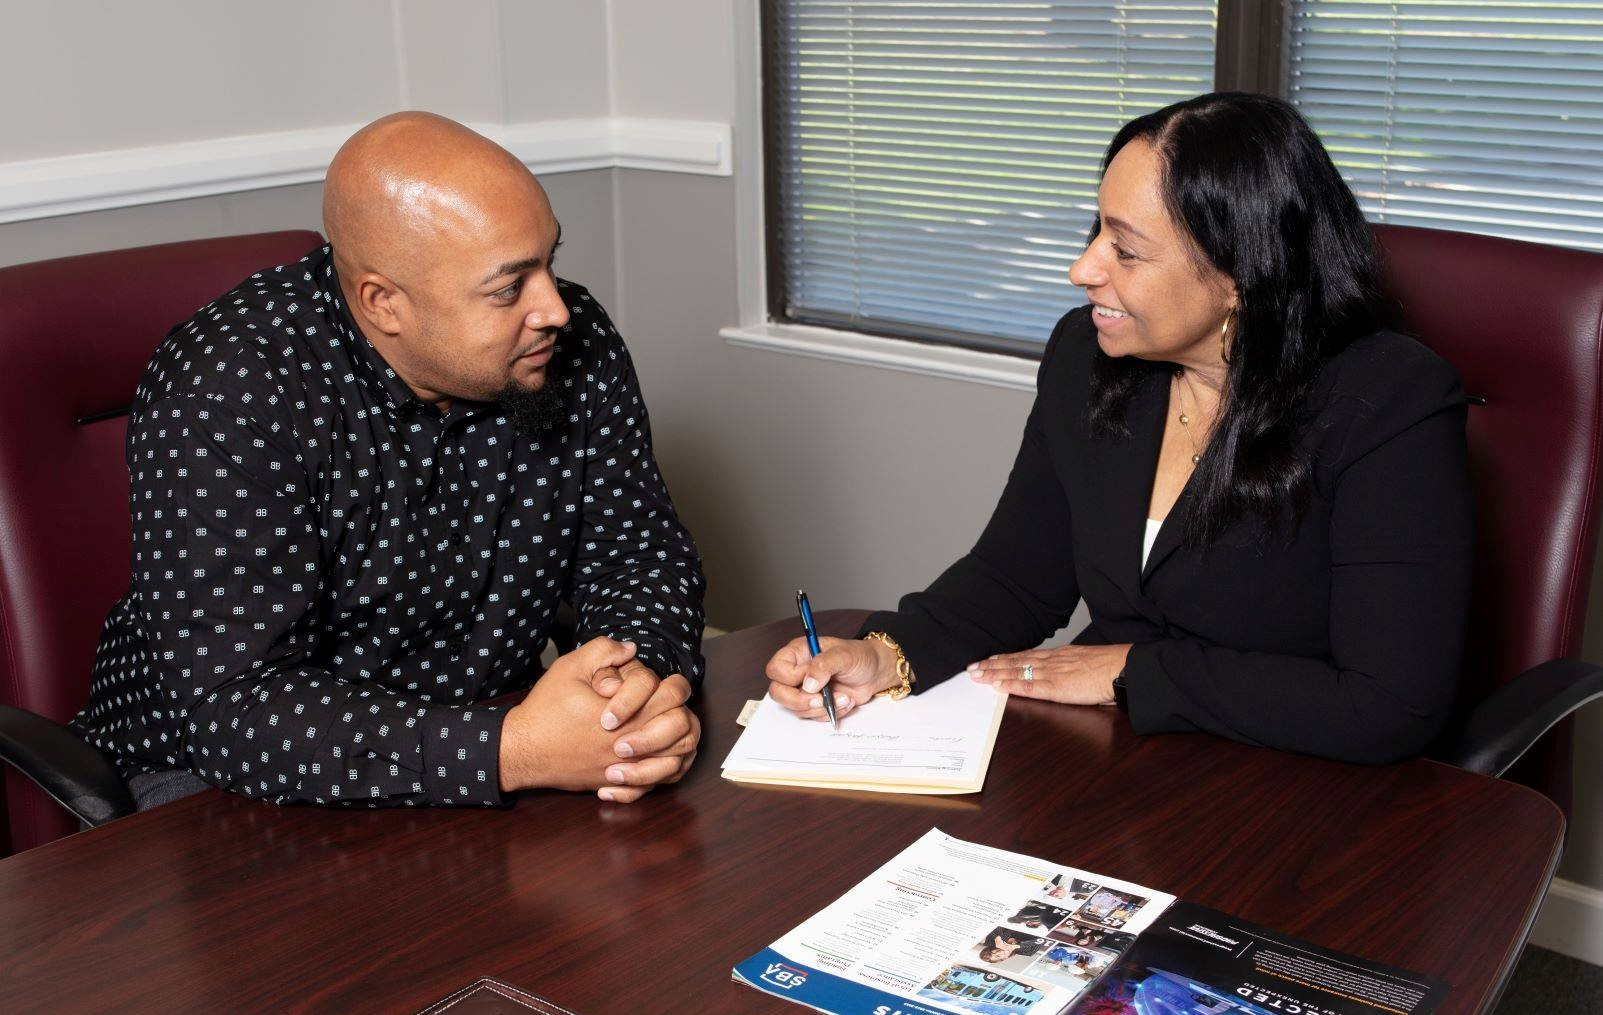 SBA staff collaborate with small business owners